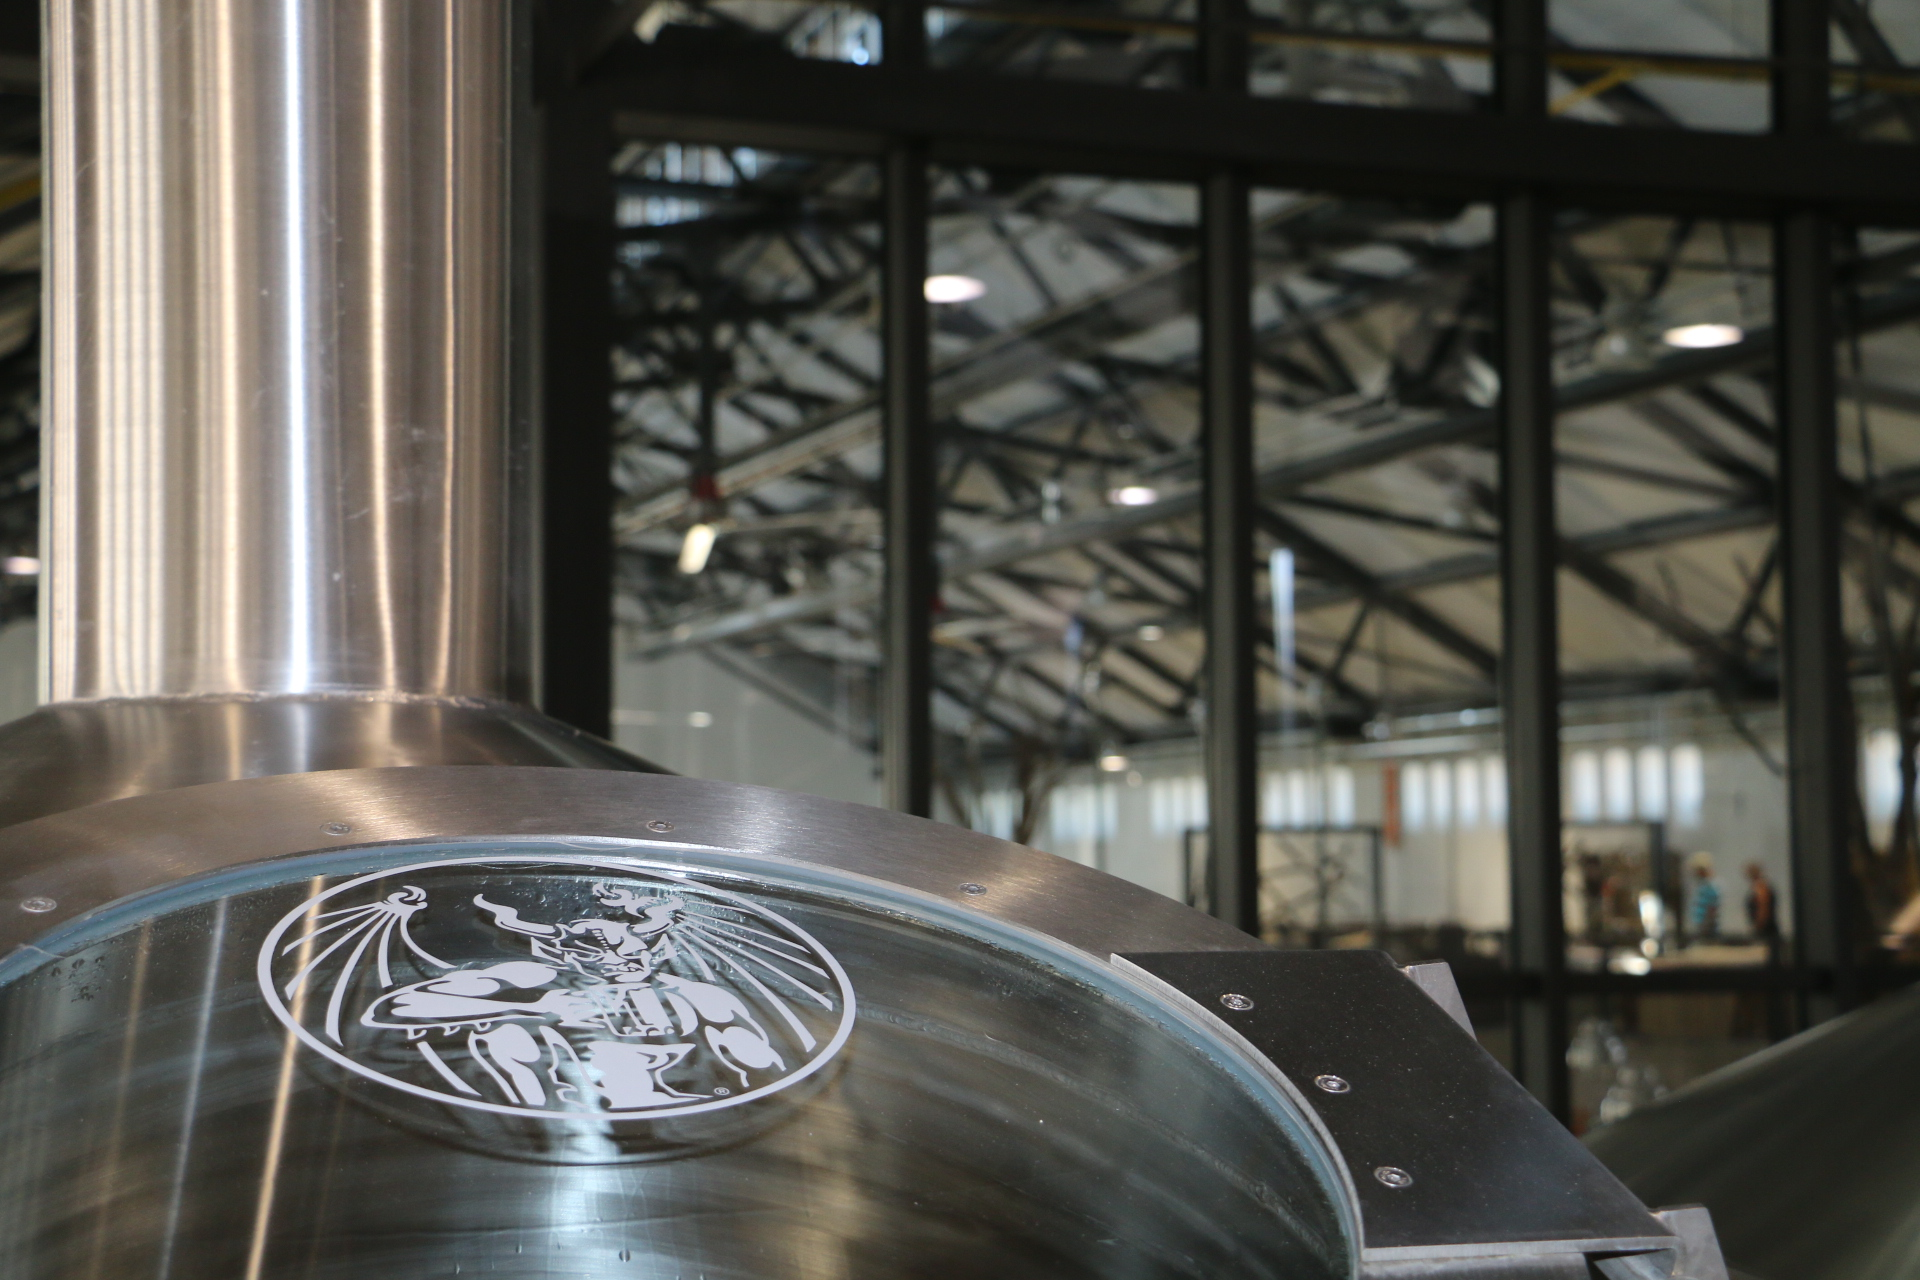 The brew kettle at Stone Brewing in Berlin, Germany. (image courtesy of Stone Brewing)